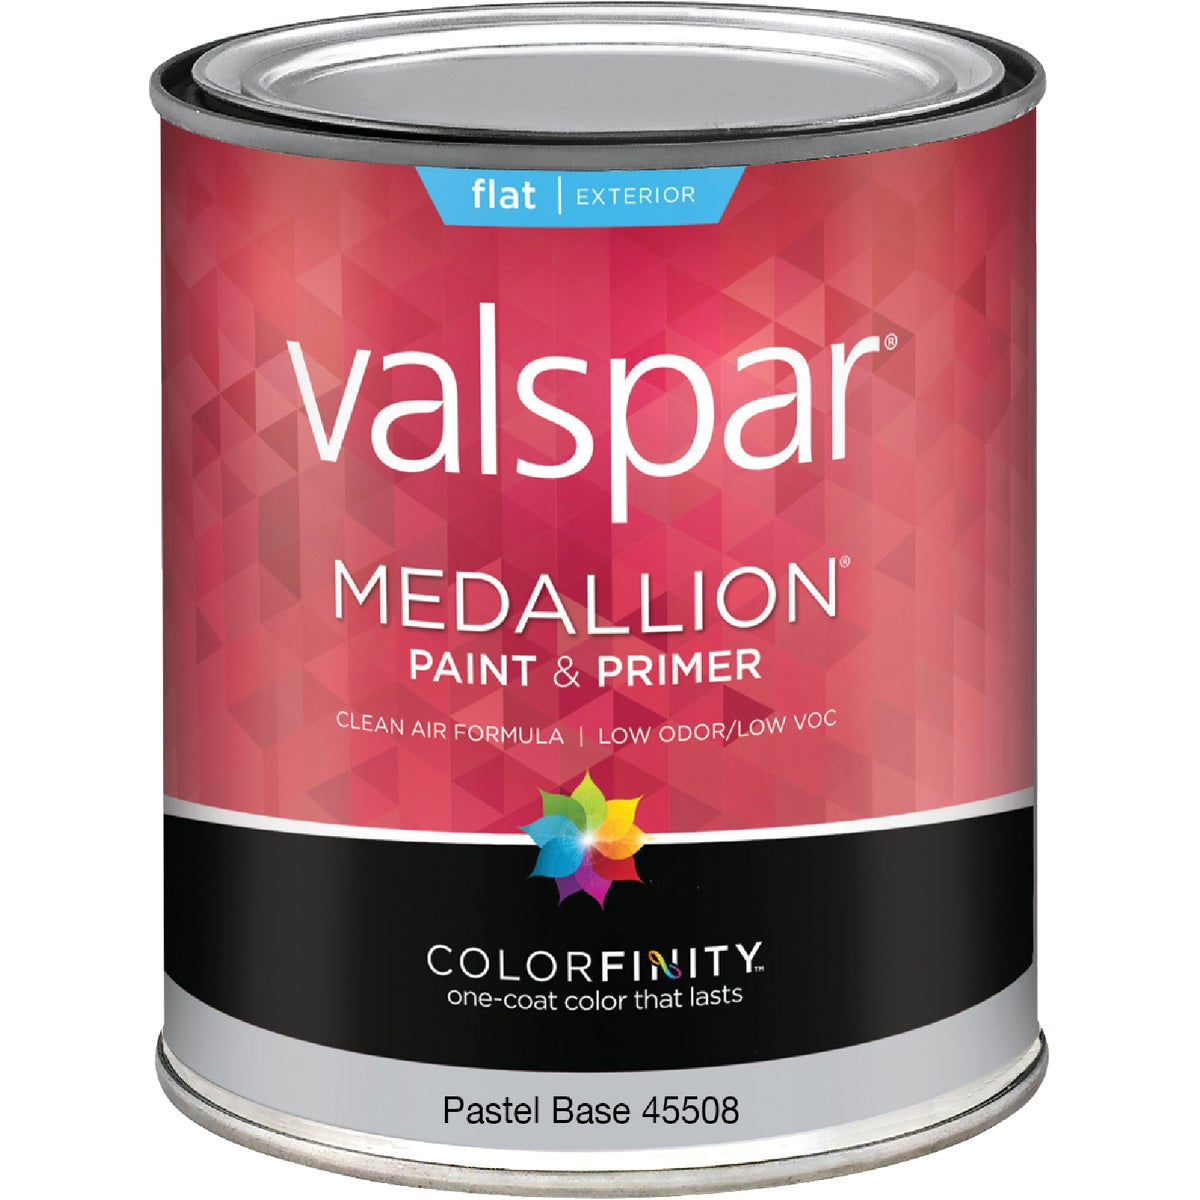 EXT FLAT PASTEL BS PAINT - 027.0045508.005 by Valspar Corp